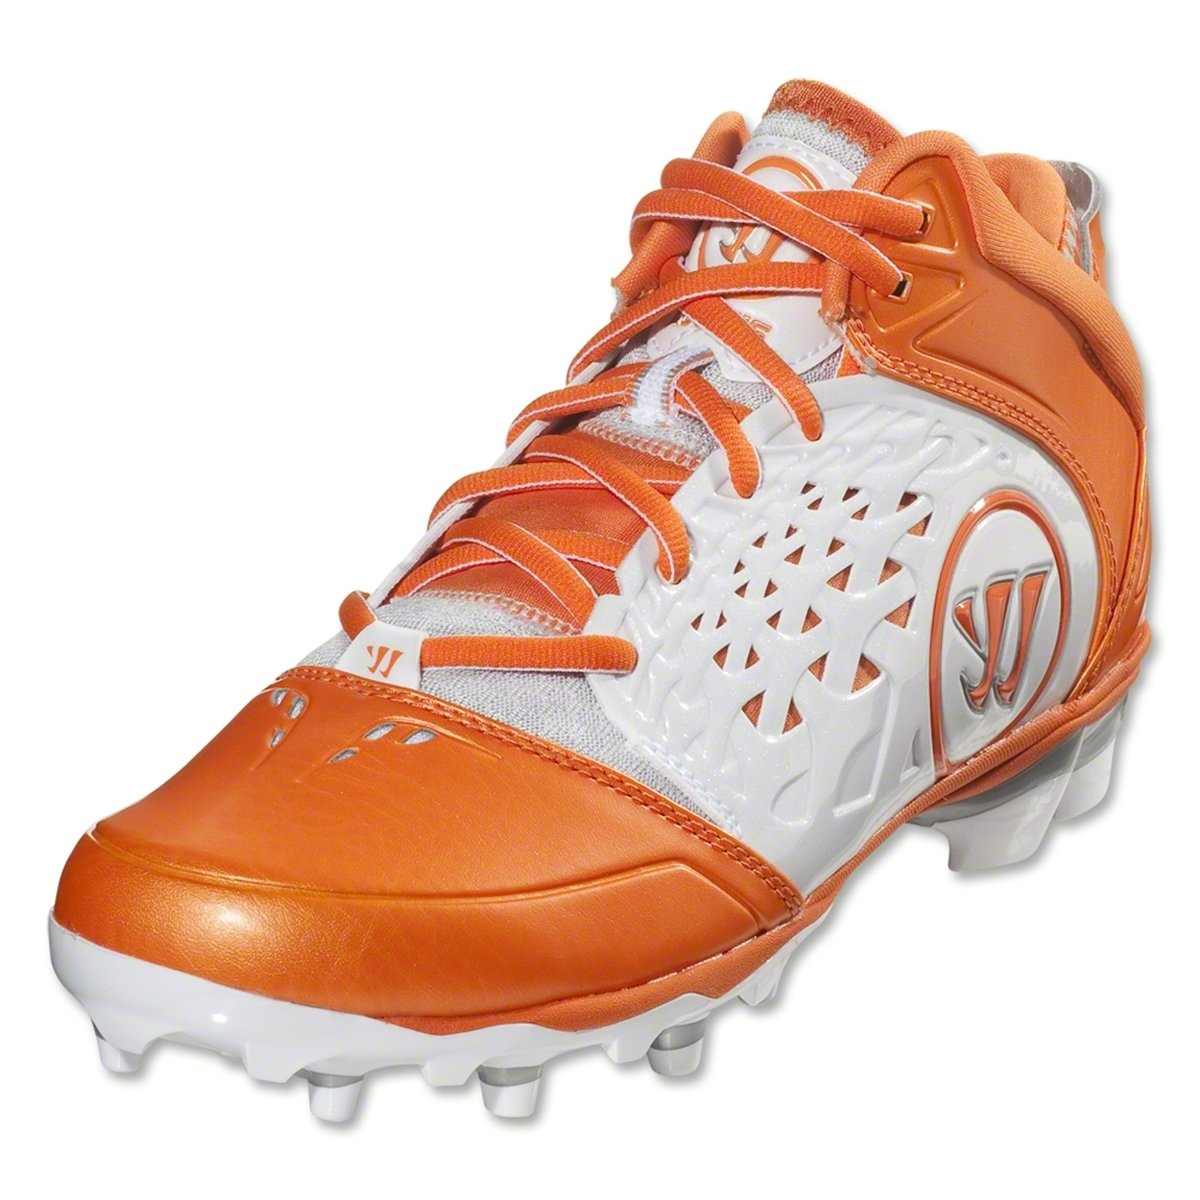 WARRIOR Men's Adonis Lacrosse Cleats - Size: 11.5, Orange